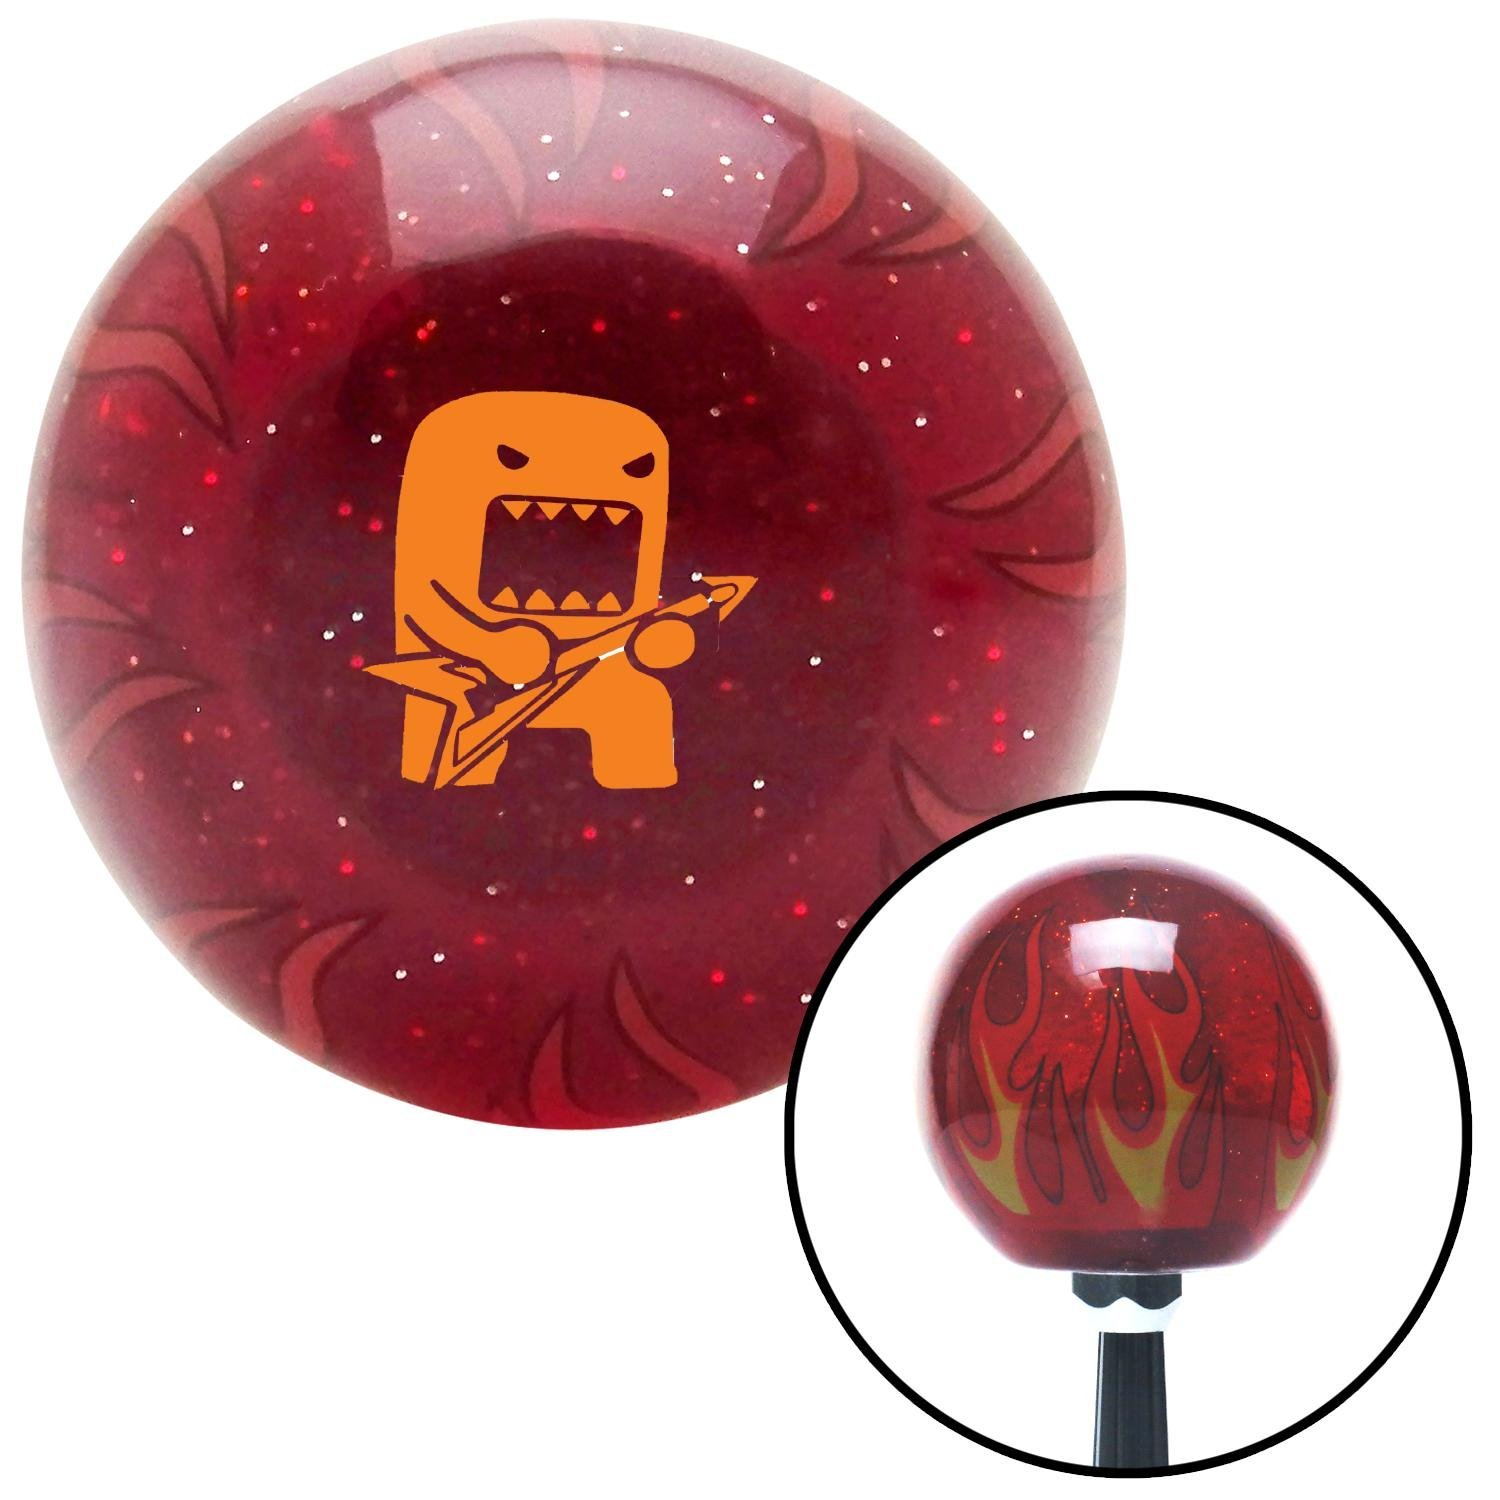 American Shifter 242412 Red Flame Metal Flake Shift Knob with M16 x 1.5 Insert Orange Domo Jammin